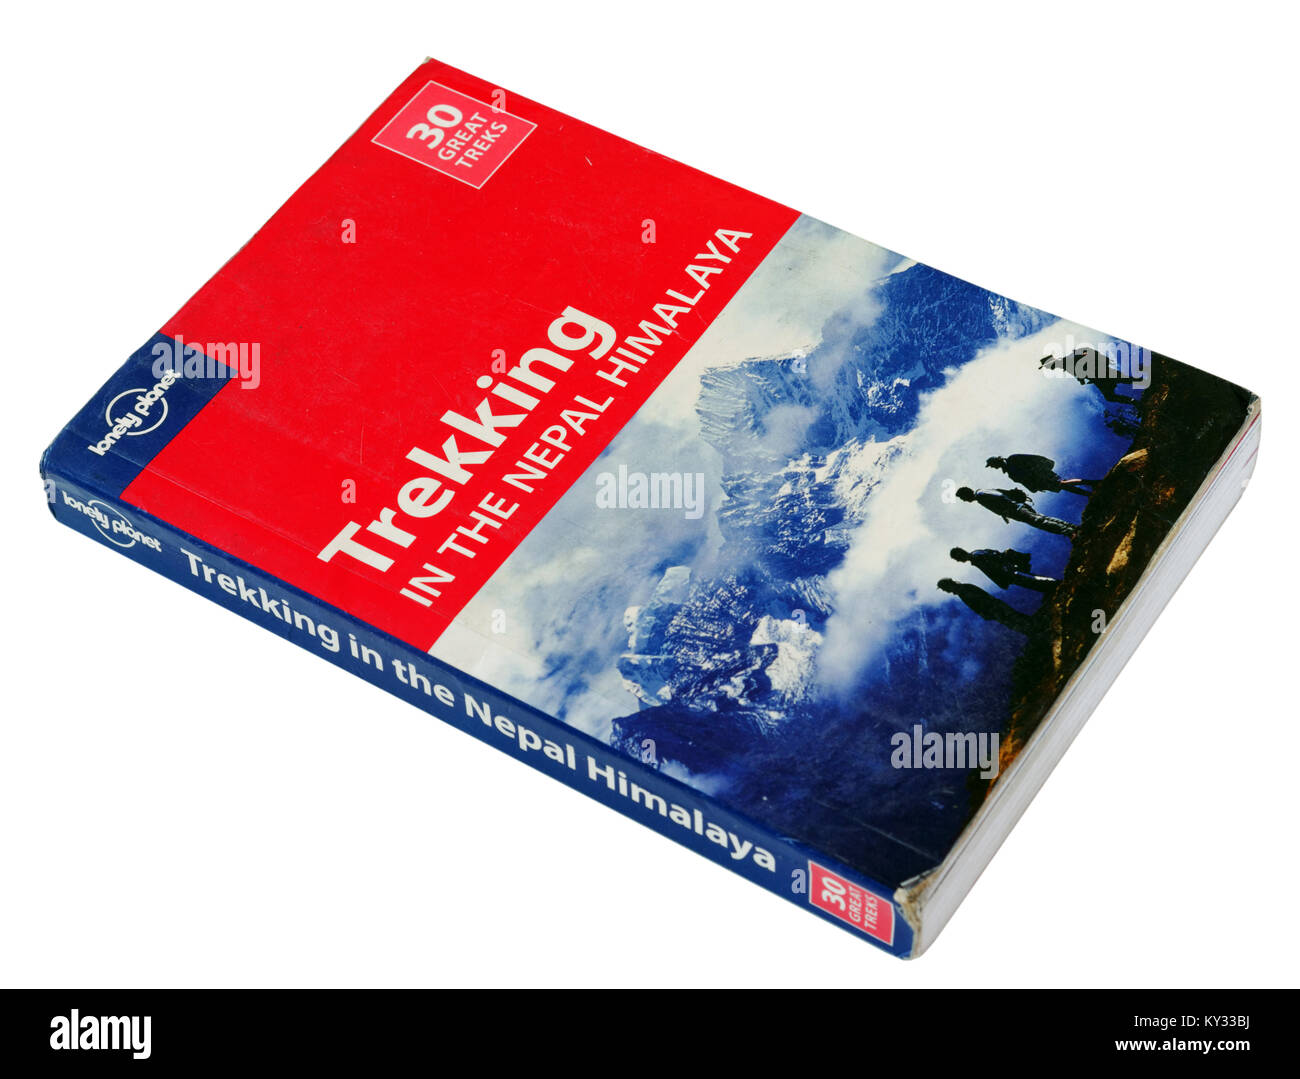 The Lonely Planet guide to Trekking in the Nepal Himalaya - Stock Image